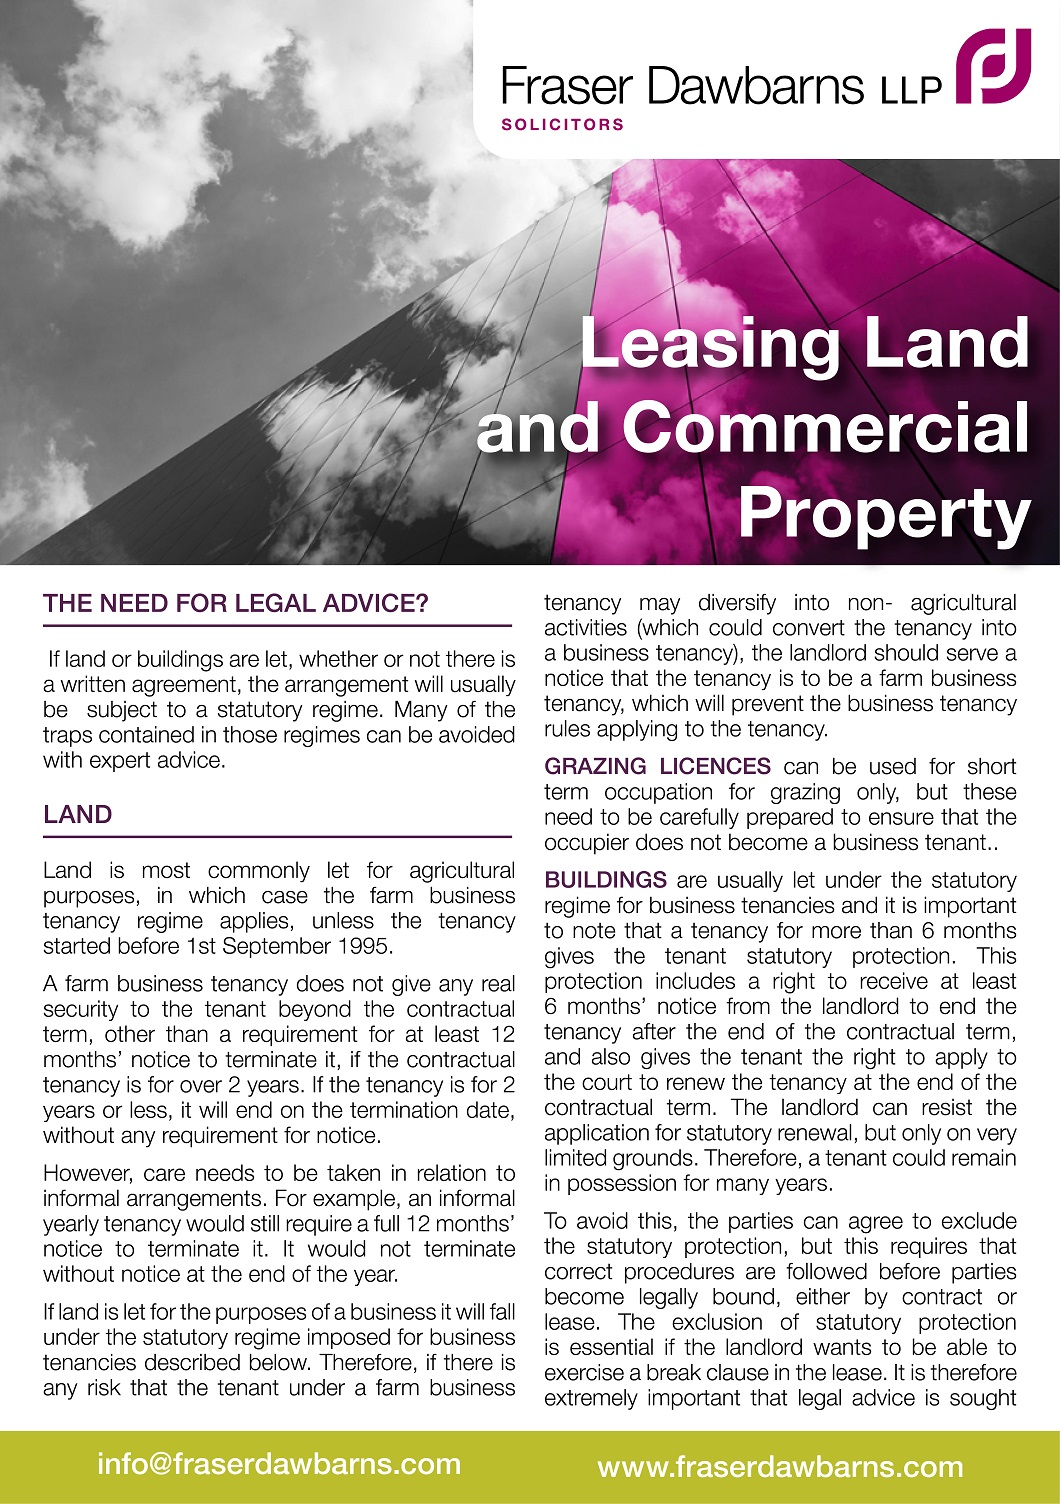 leasing_land_commercial_property